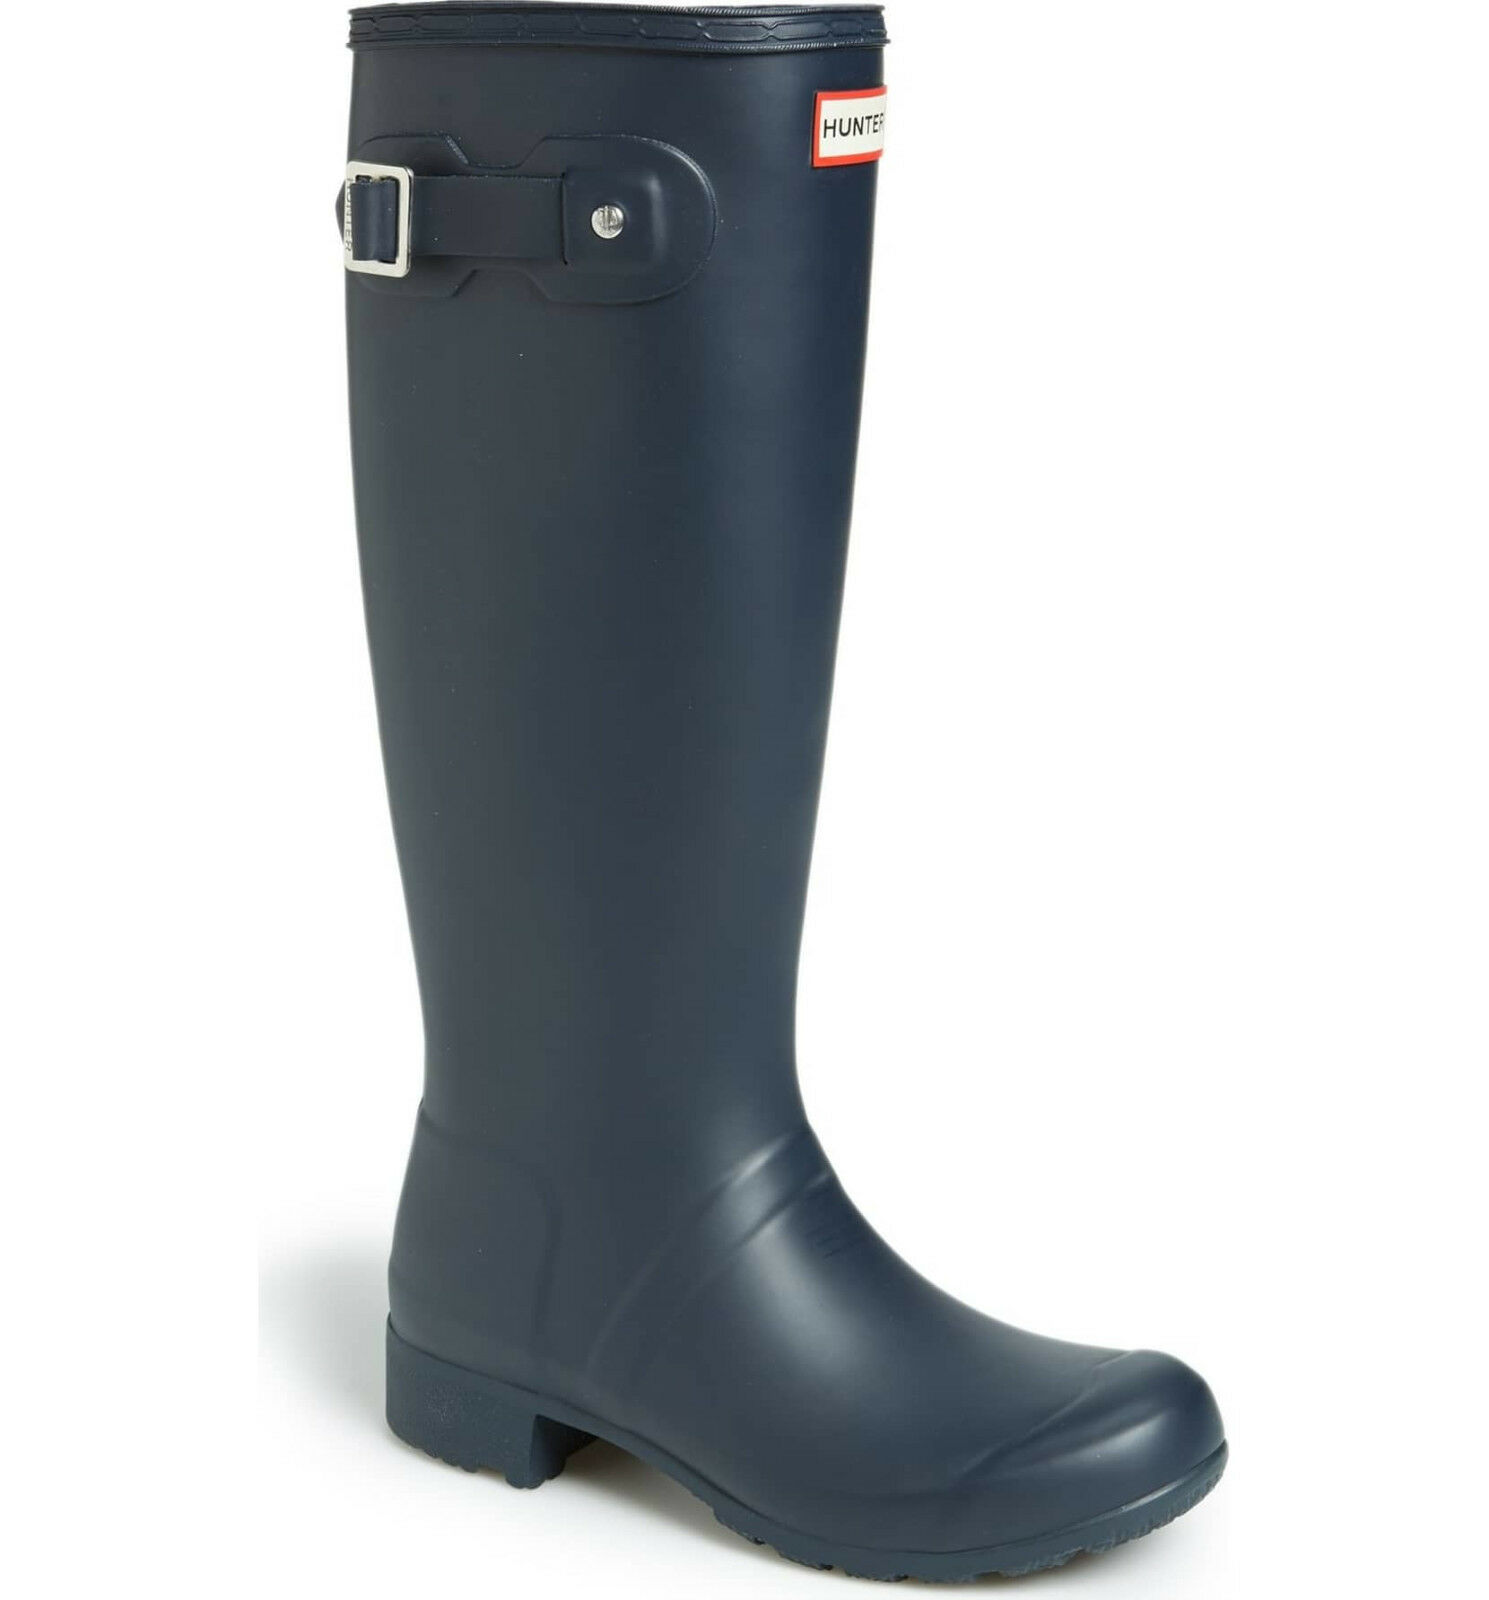 Hunter Original bottes Navy Matte Tall Packable Rain bottes New Authentic